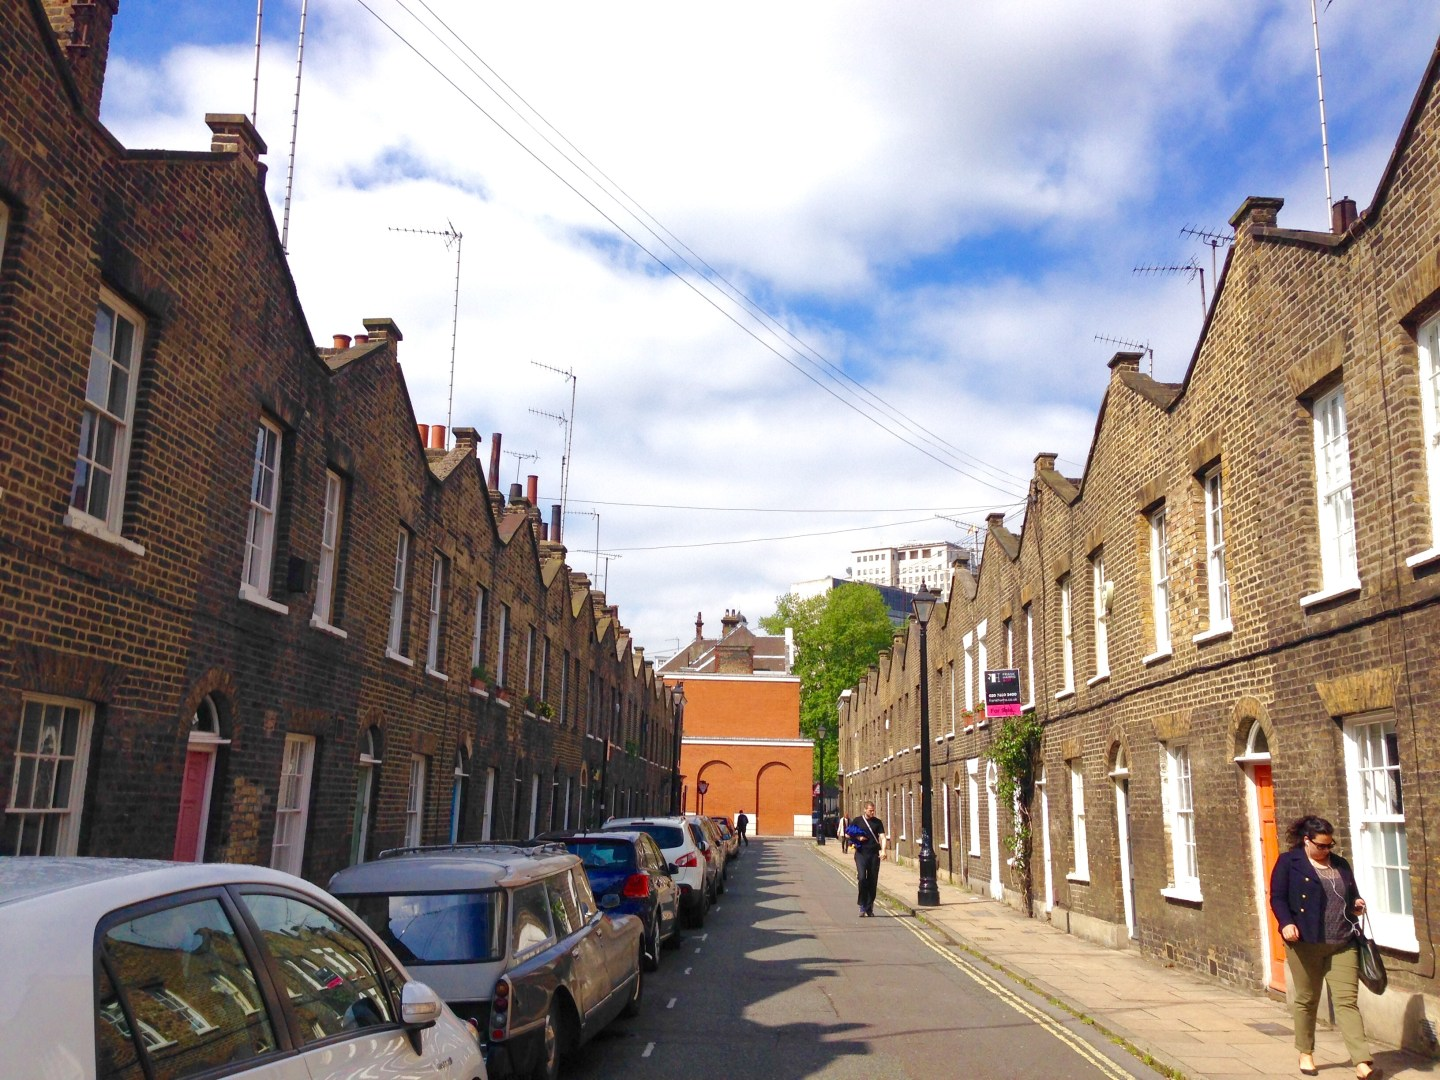 Airbnb: Welcome to Roupell Street, London!